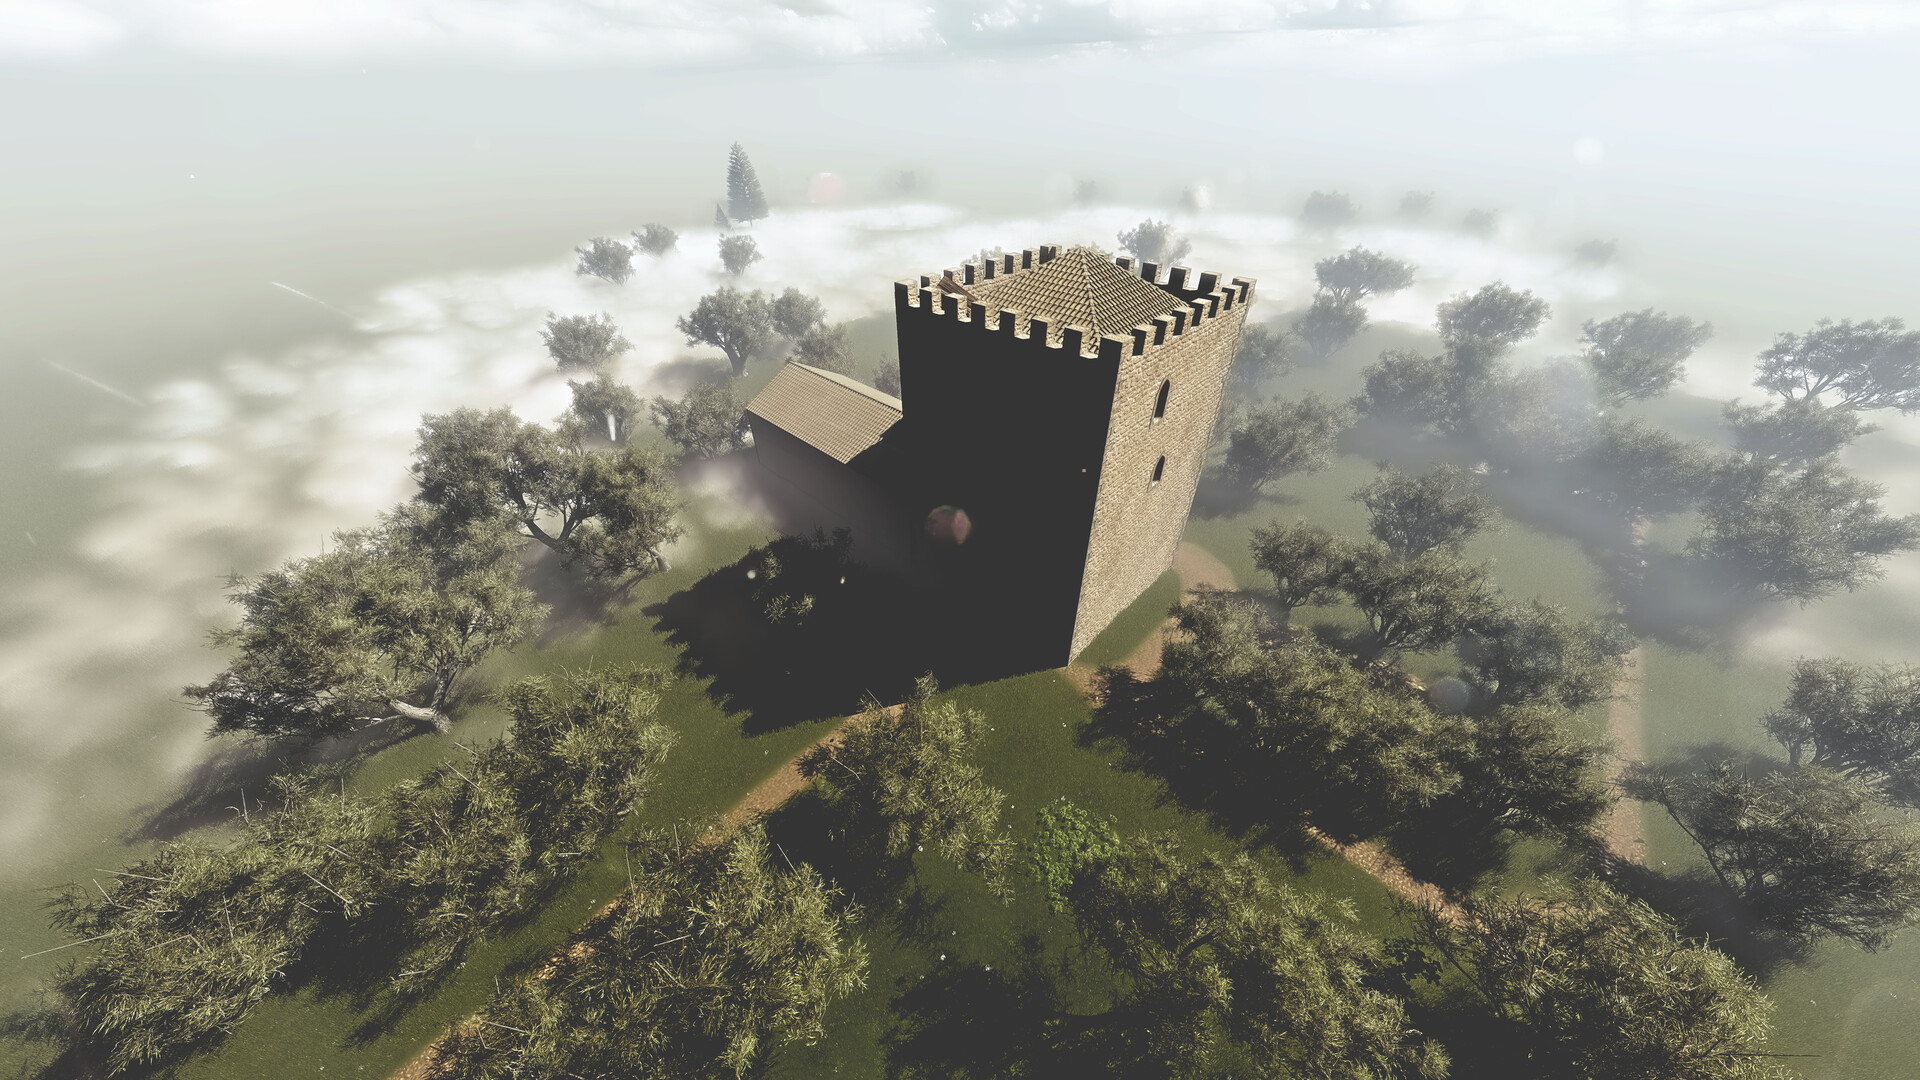 Phase 3 - Medieval Tower